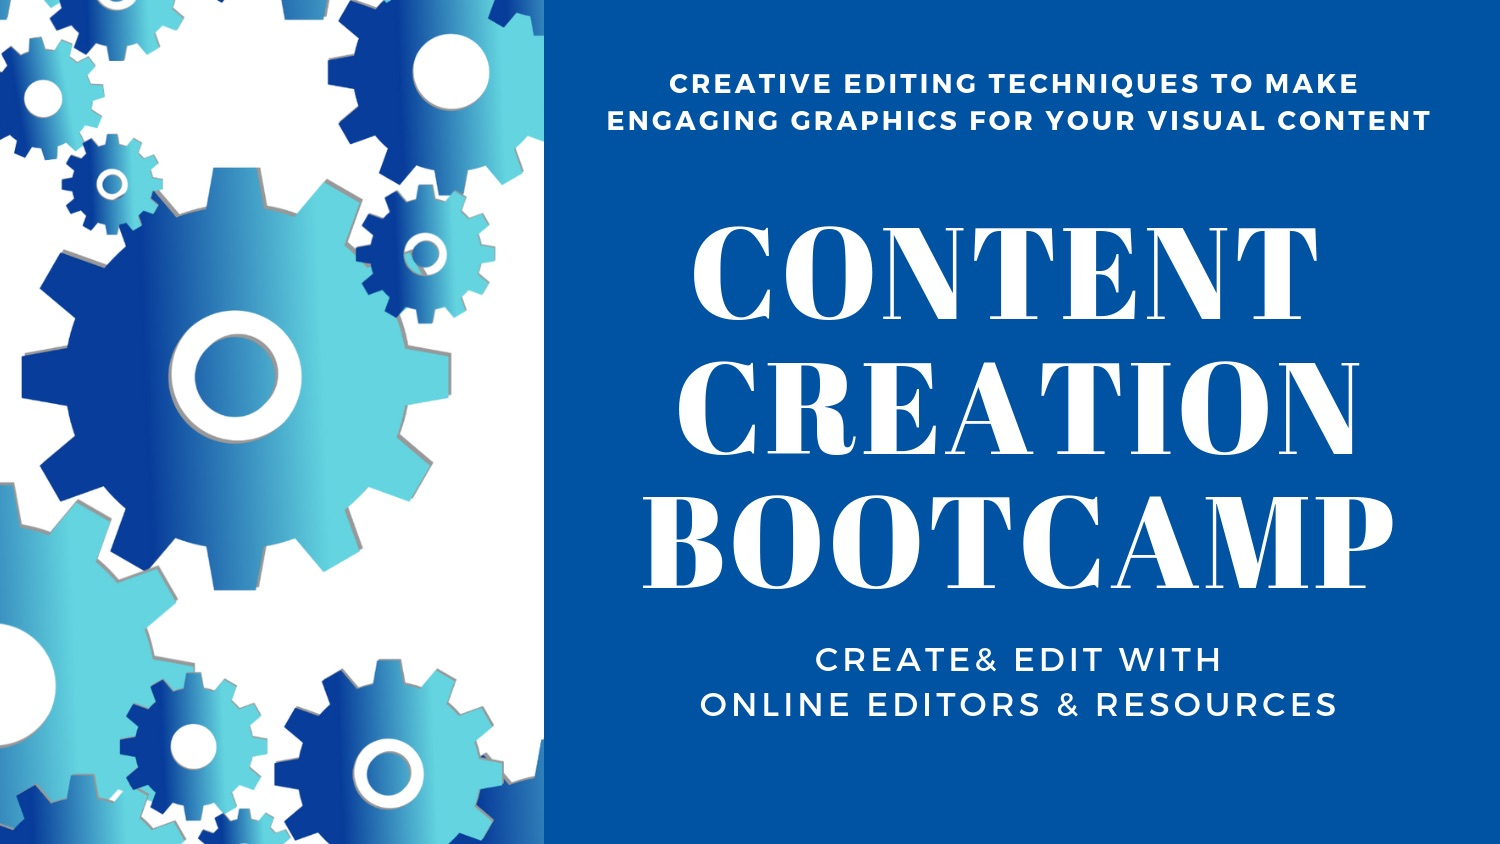 content-creator-bootcamp-offer.jpg